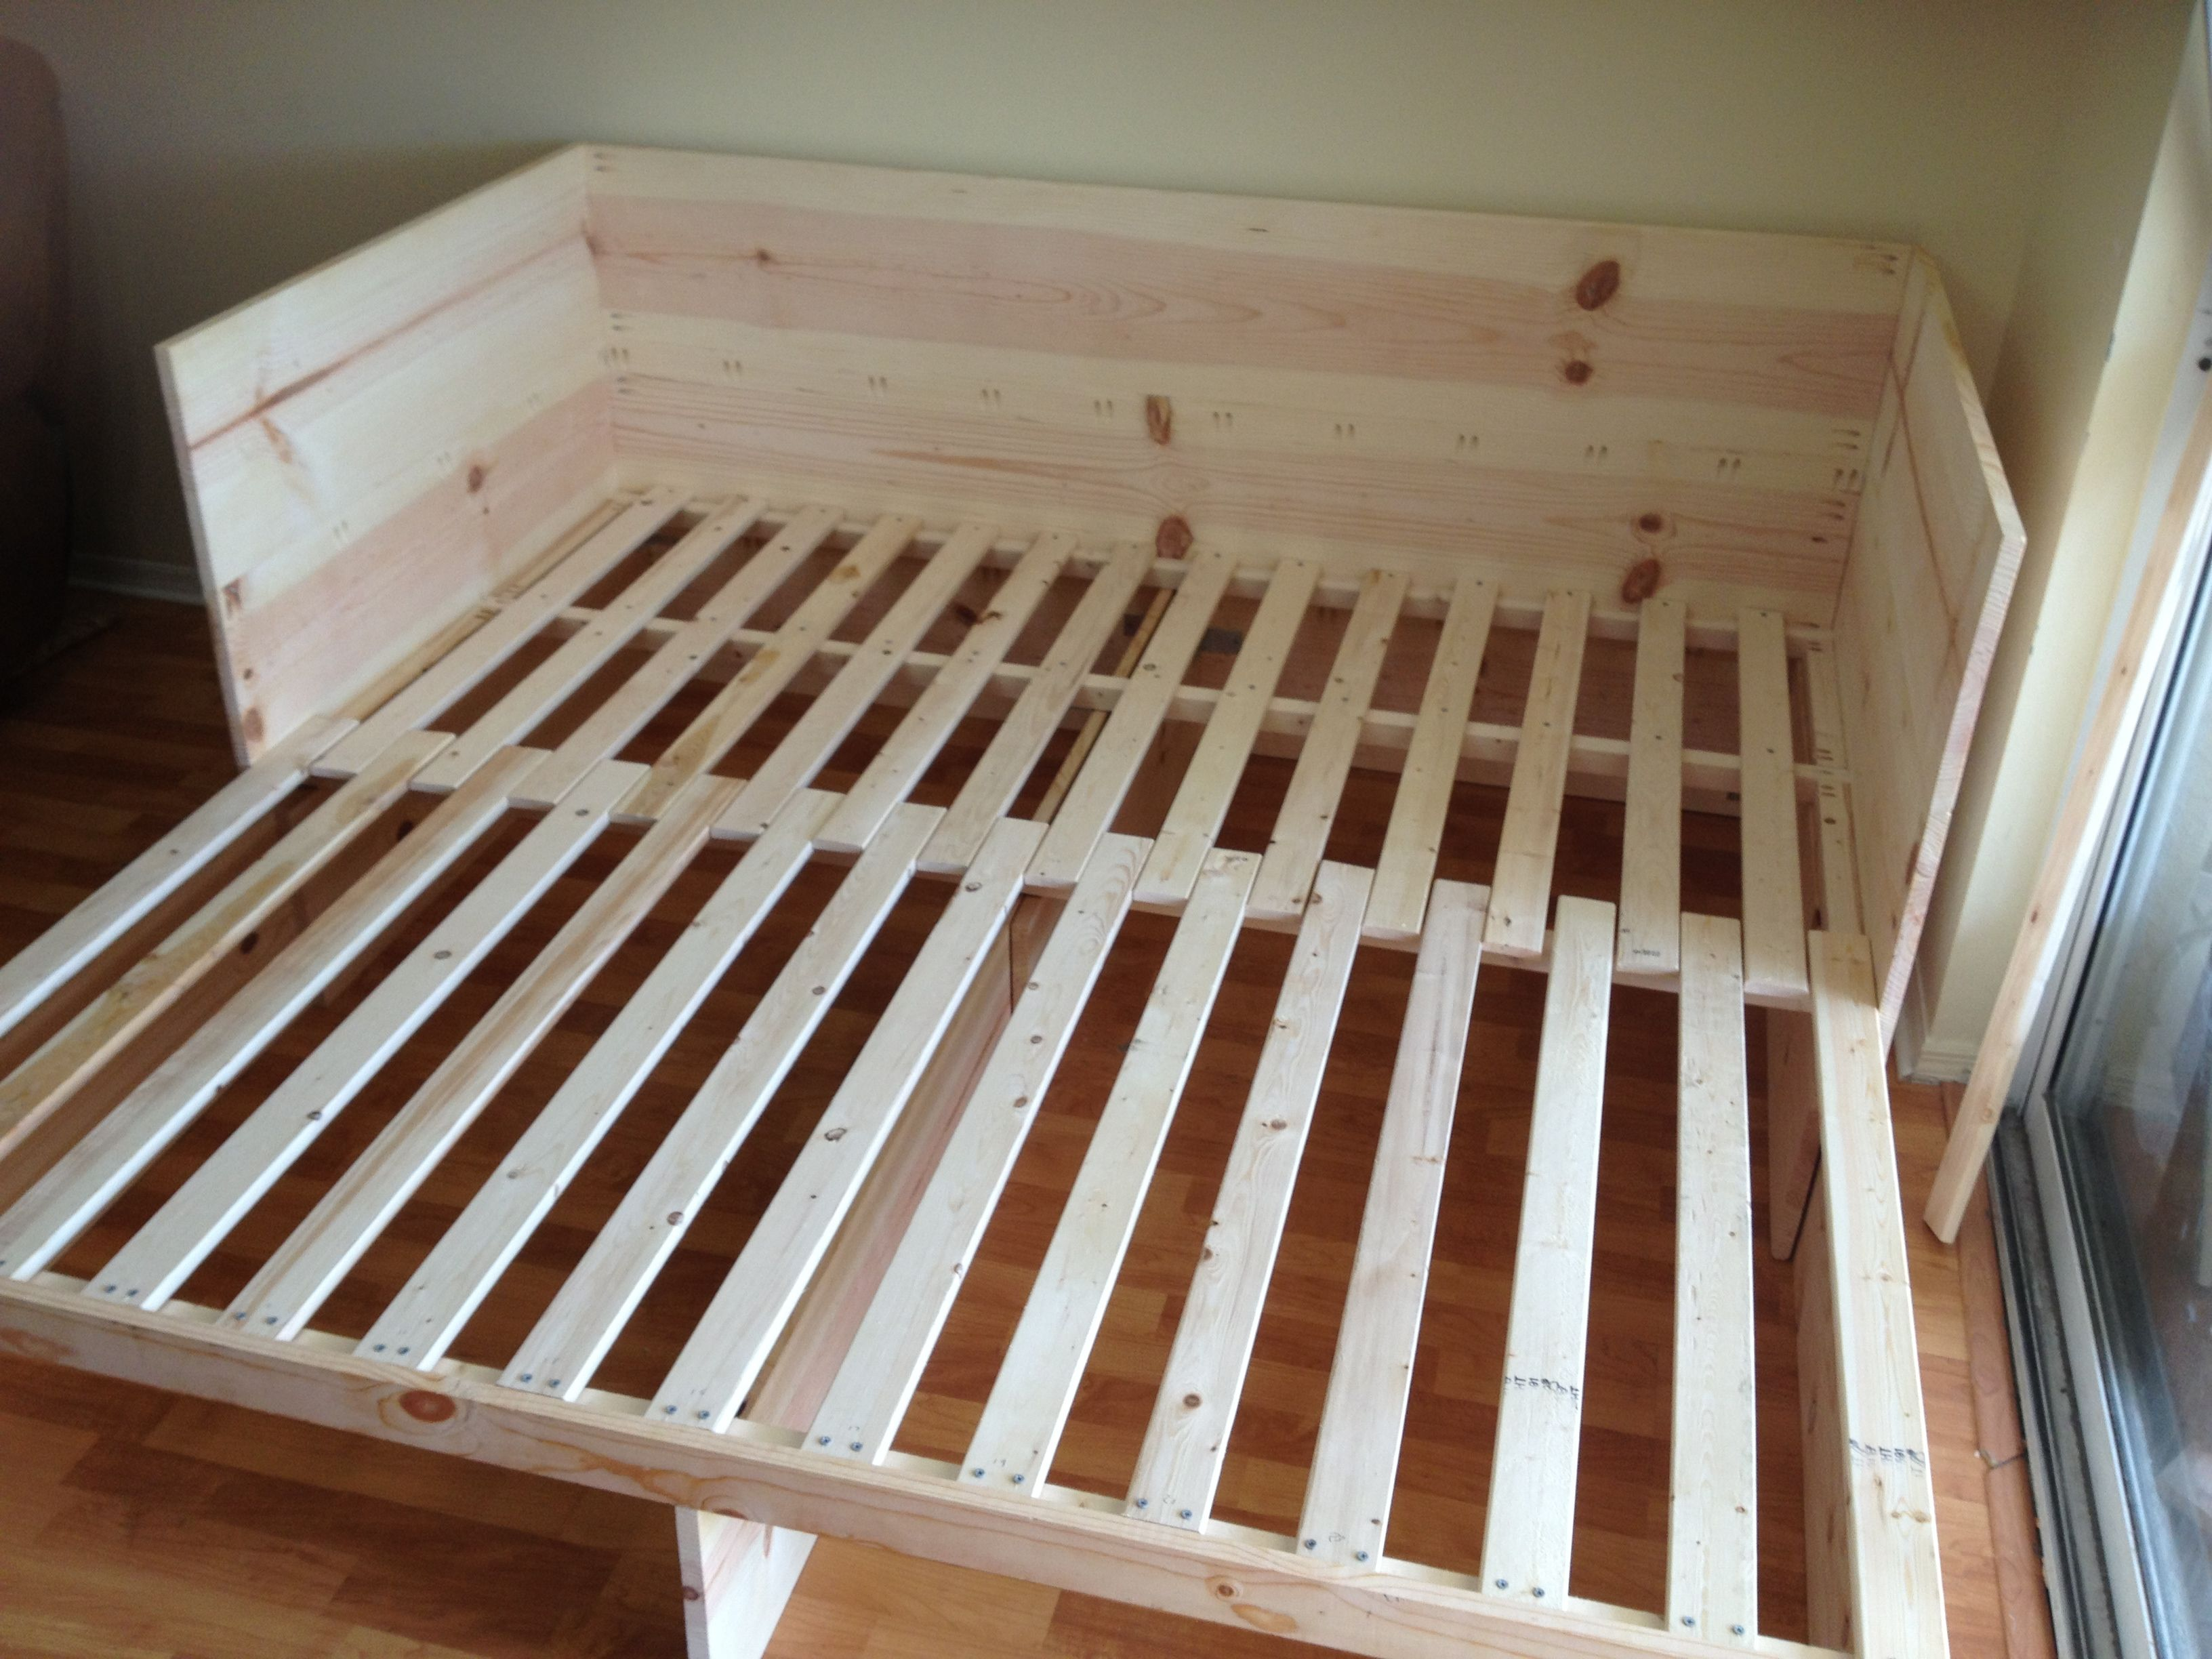 Sofa Pull Out Bed Frame Camerich Review Building Ideas Pinterest Diy And